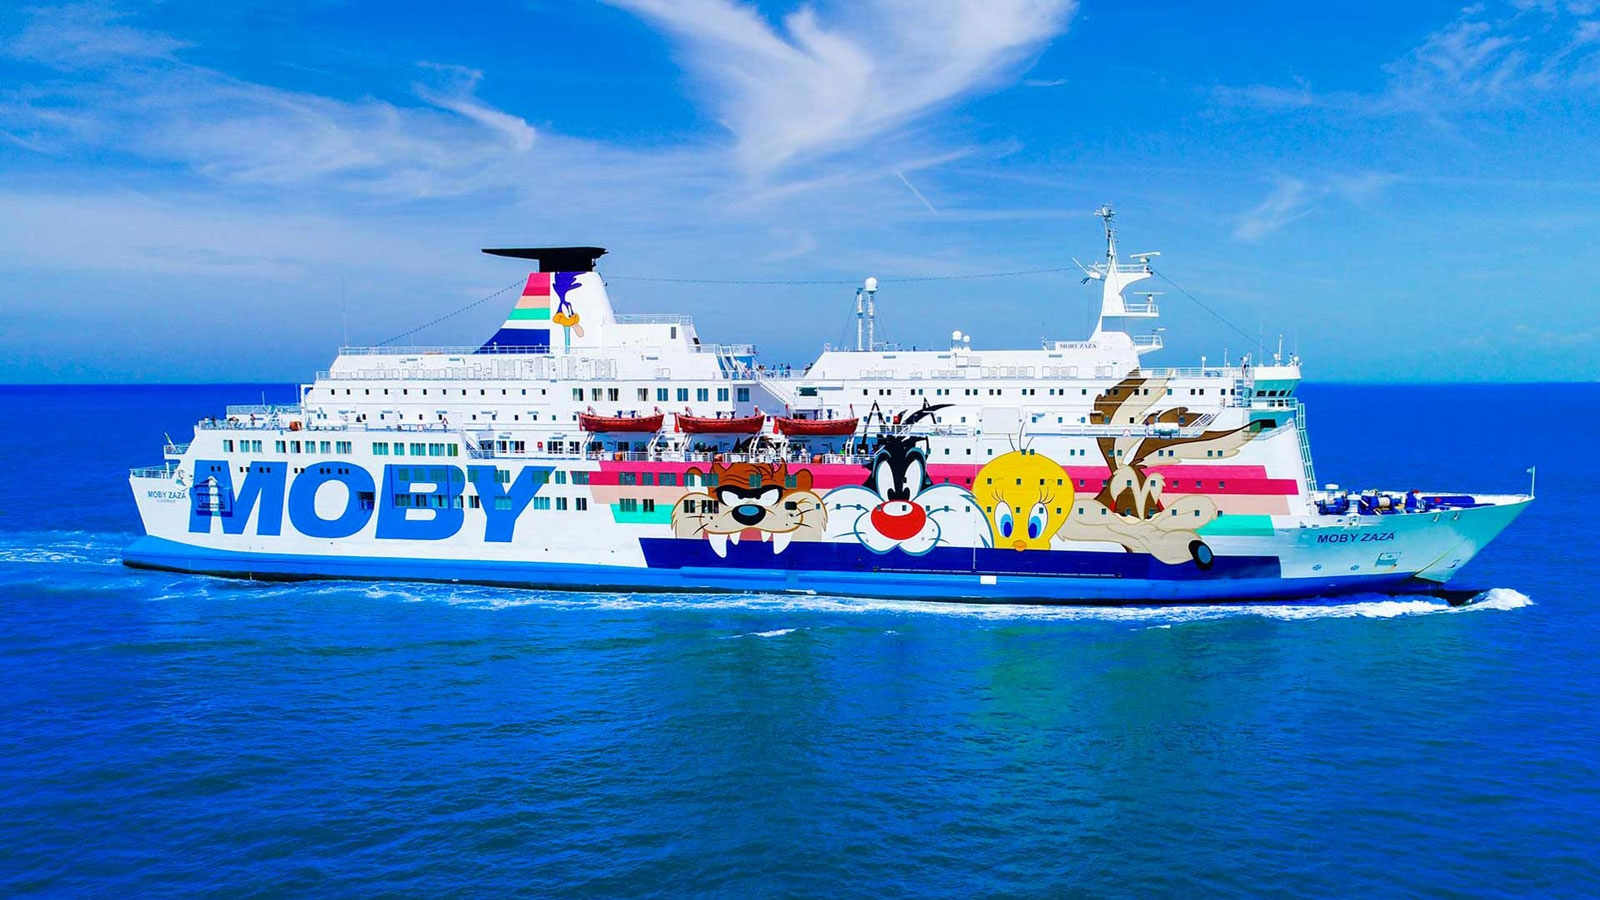 Moby Lines MOBY ZAZA currently serves the Nice to Bastia route which Moby Lines are to close in early 2019. She is perhaps better known in the UK and Ireland as the former OLAU BRITANNIA (i) of Olau and JULIA of Swansea - Cork operator Fastnet Line. Moby Lines.